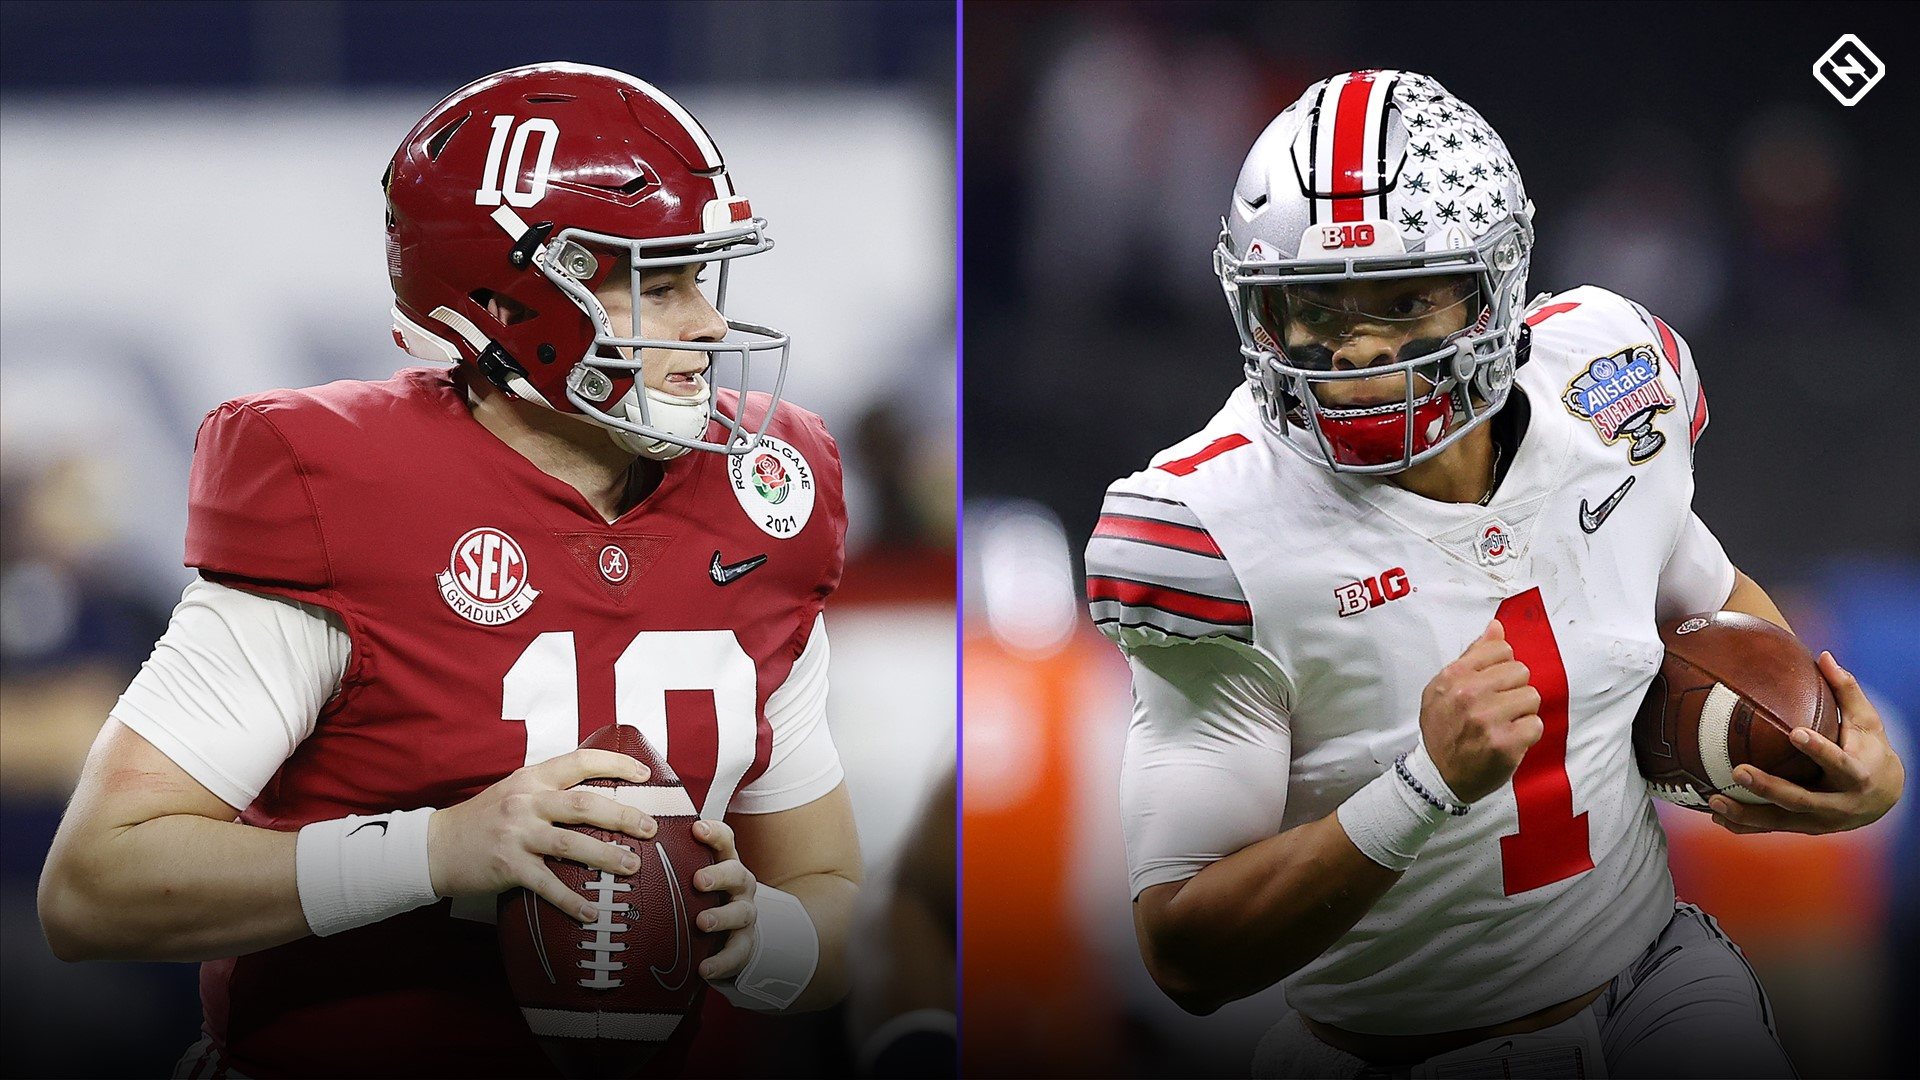 Alabama vs. Ohio State live score, updates, highlights from 2021 College Football Playoff championship